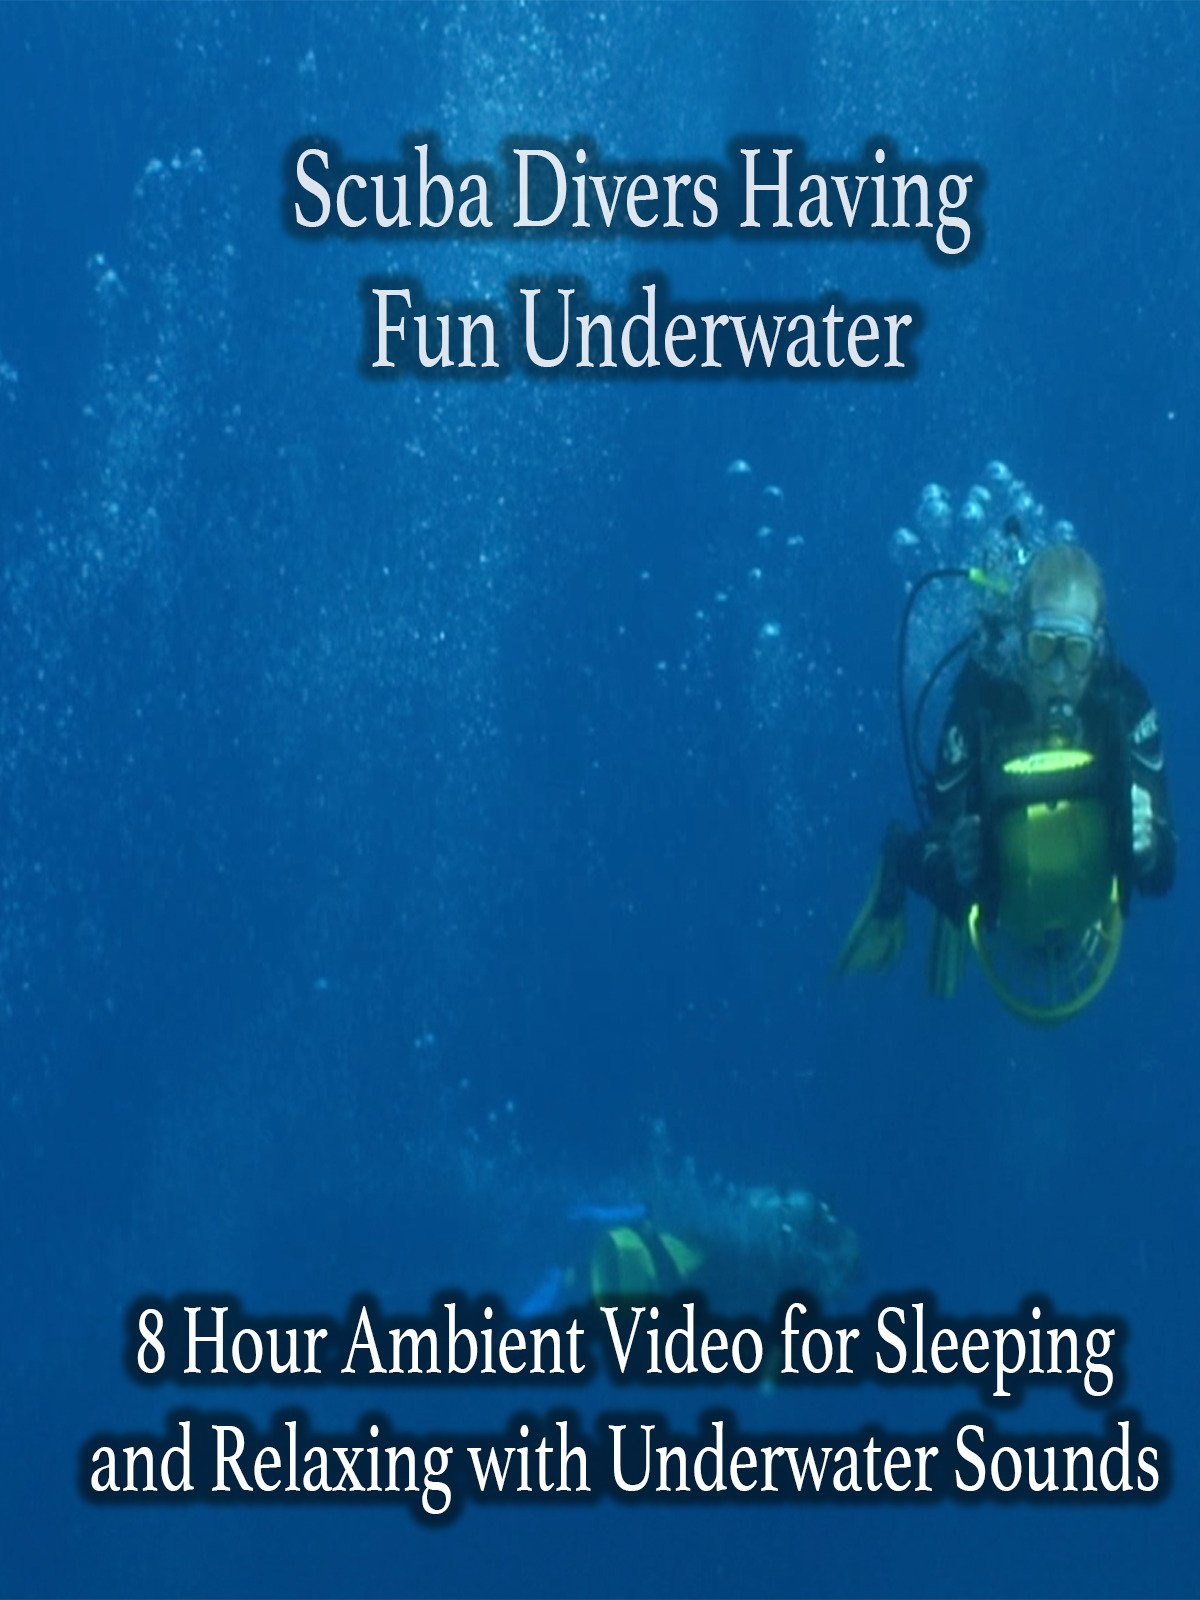 Scuba Divers Having Fun Underwater 8 Hour Ambient Video for Sleeping and Relaxing with Underwater Sounds